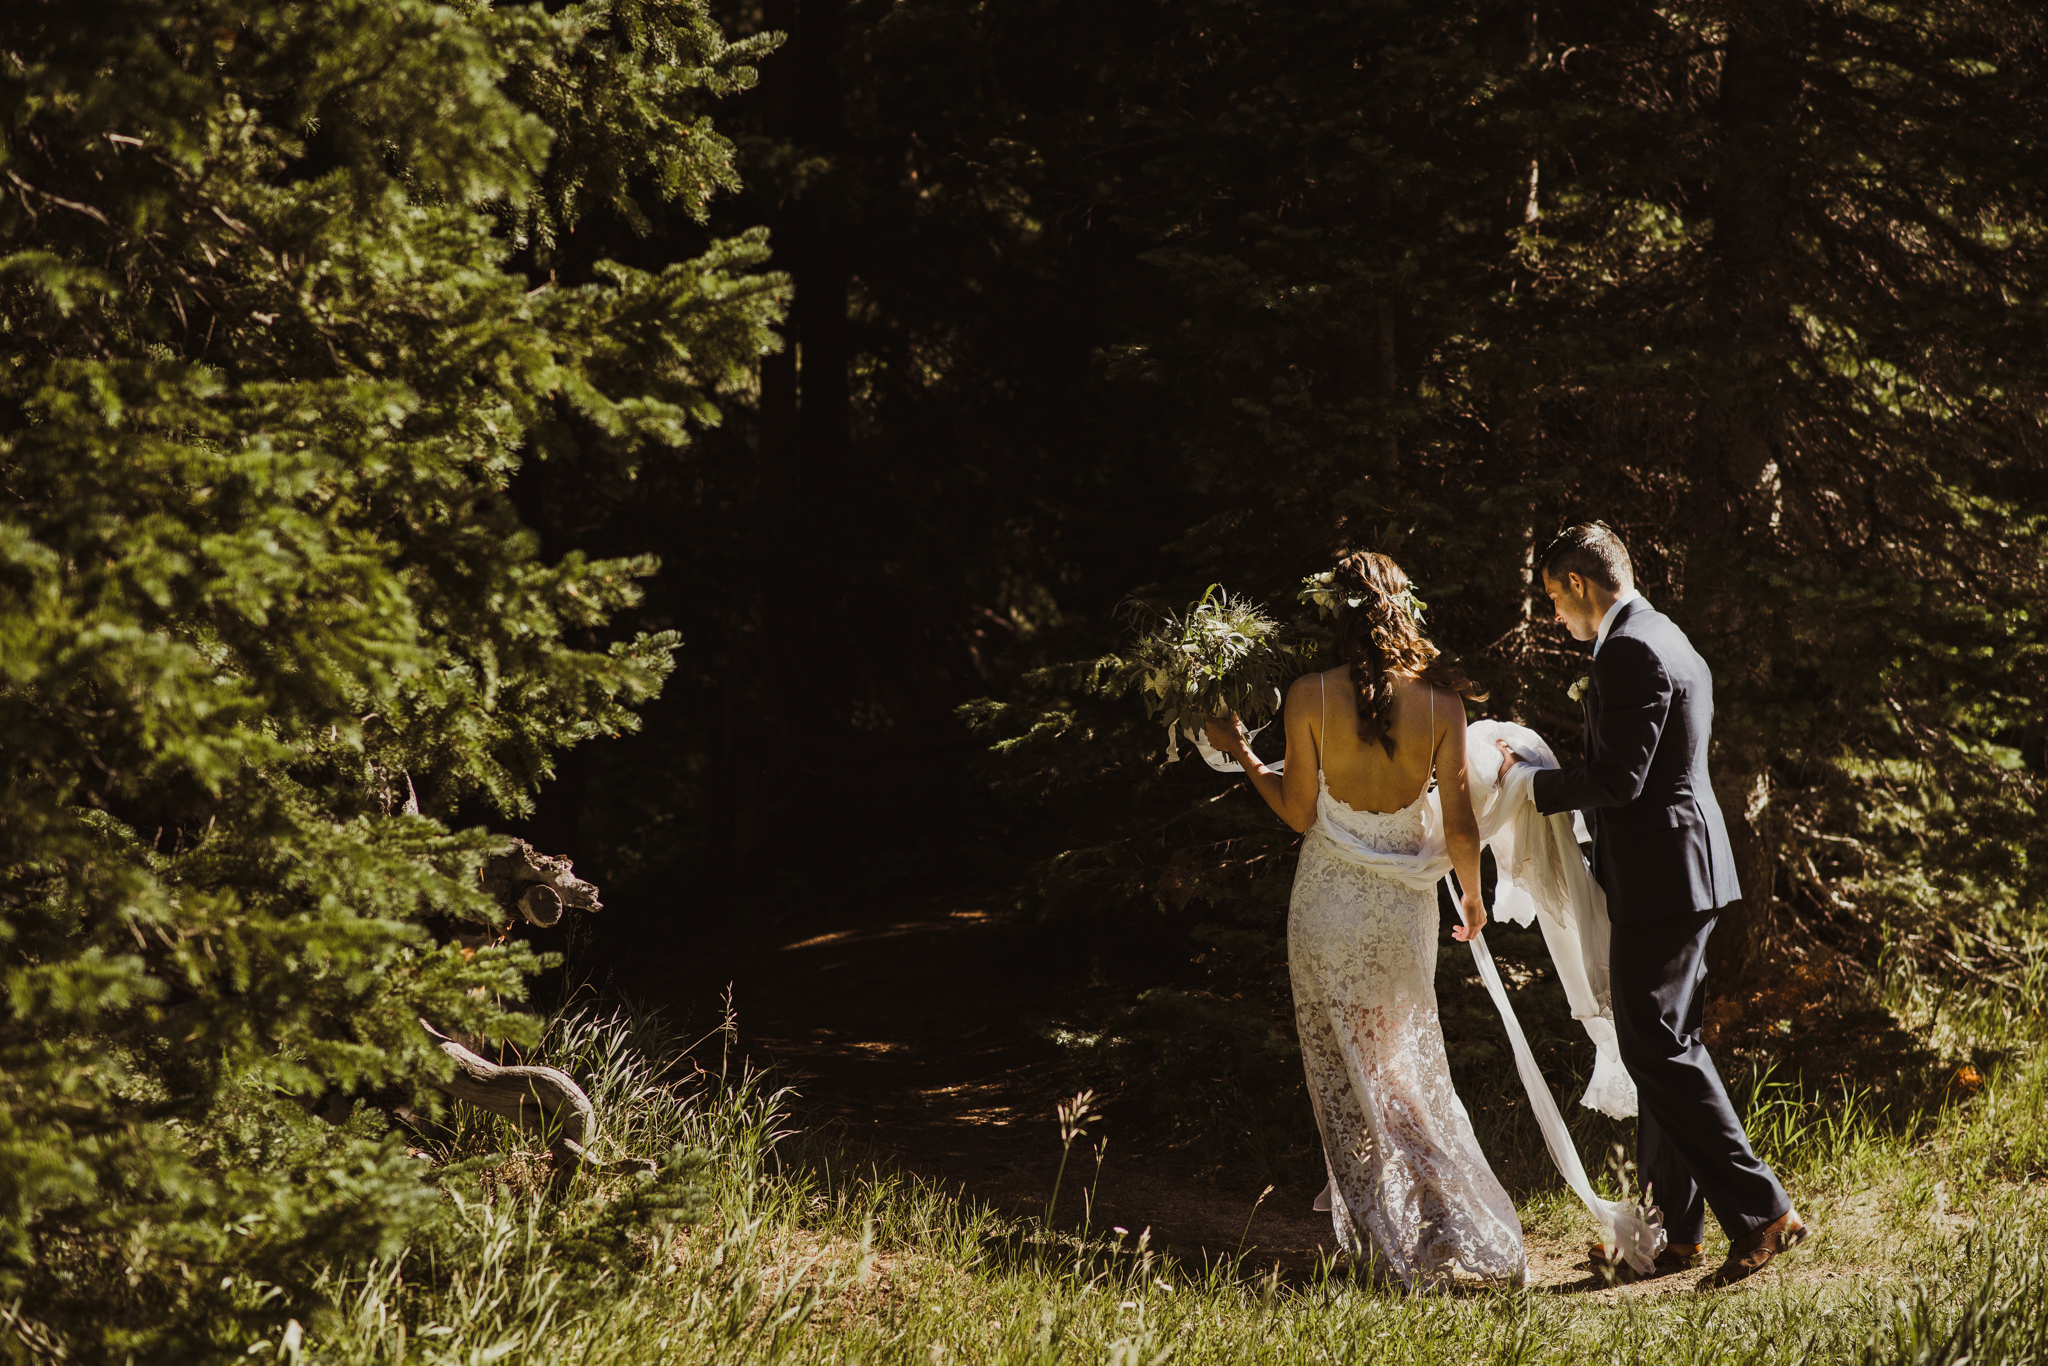 ©Isaiah + Taylor Photography - Estes National Park Adventure Elopement, Colorado Rockies-40.jpg